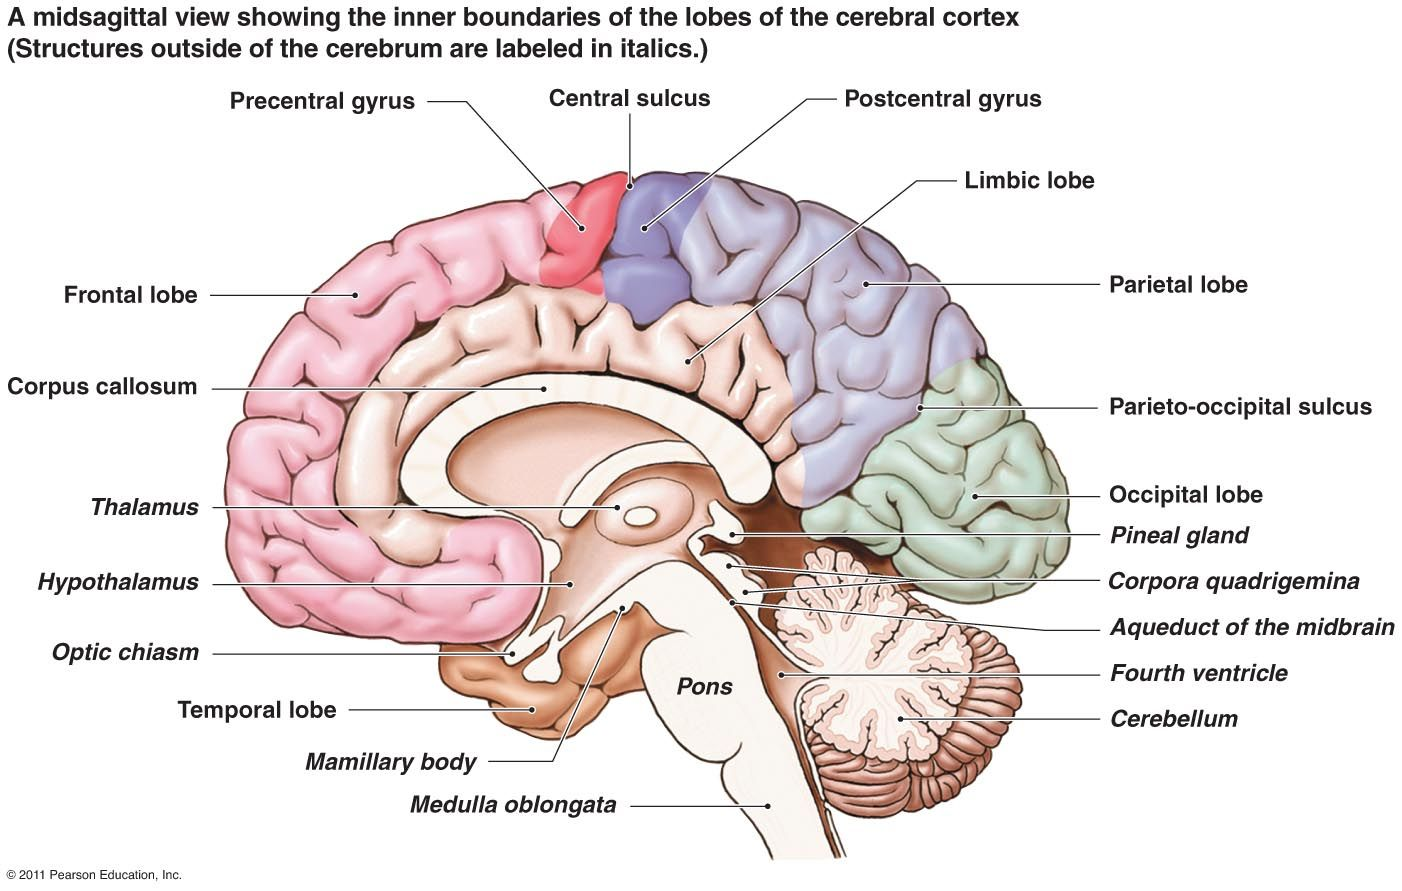 Parts Of A Brain Diagram Detailed Brain Diagram Awesome Detailed Brain Anatomy At Best Brain Anatomy Brain Diagram Human Brain Anatomy